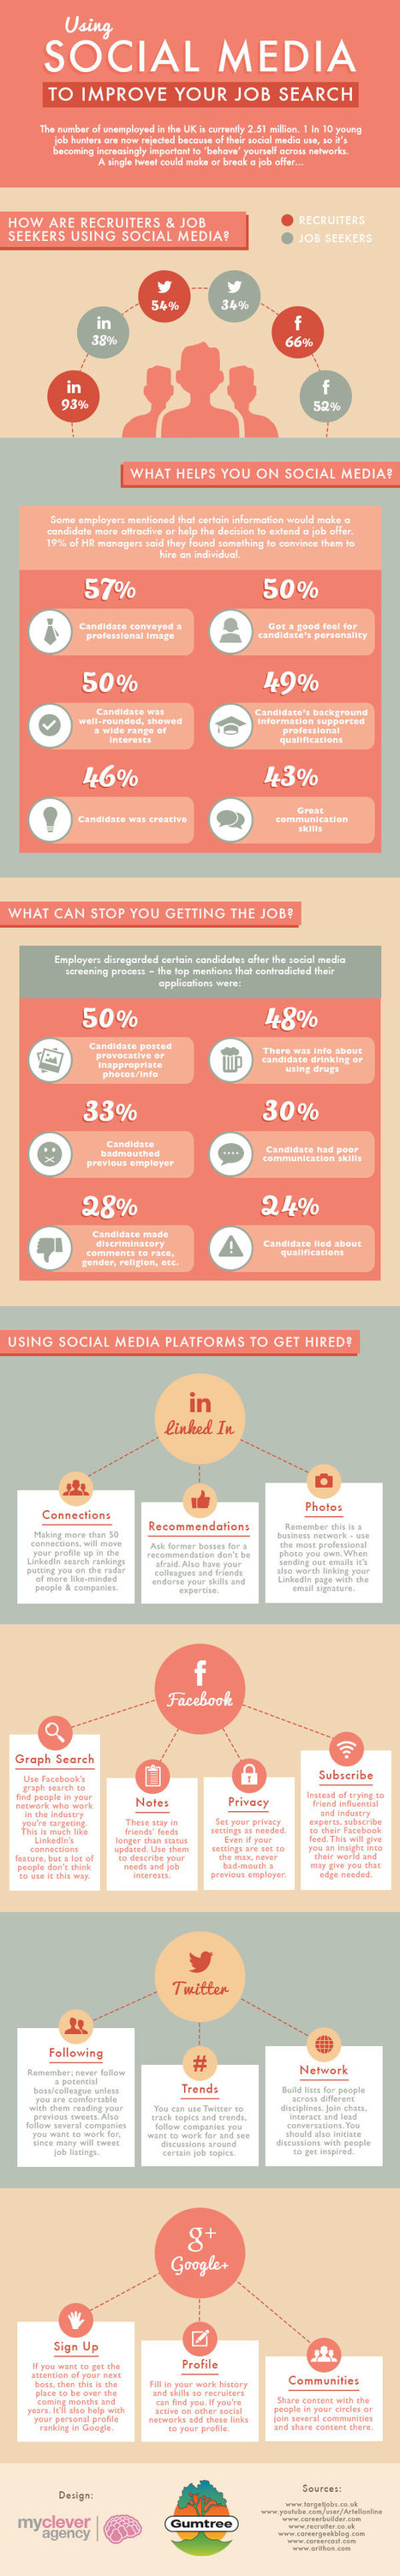 How To Use Social Media To Improve Your Job Search #INFOGRAPHIC | MarketingHits | Scoop.it